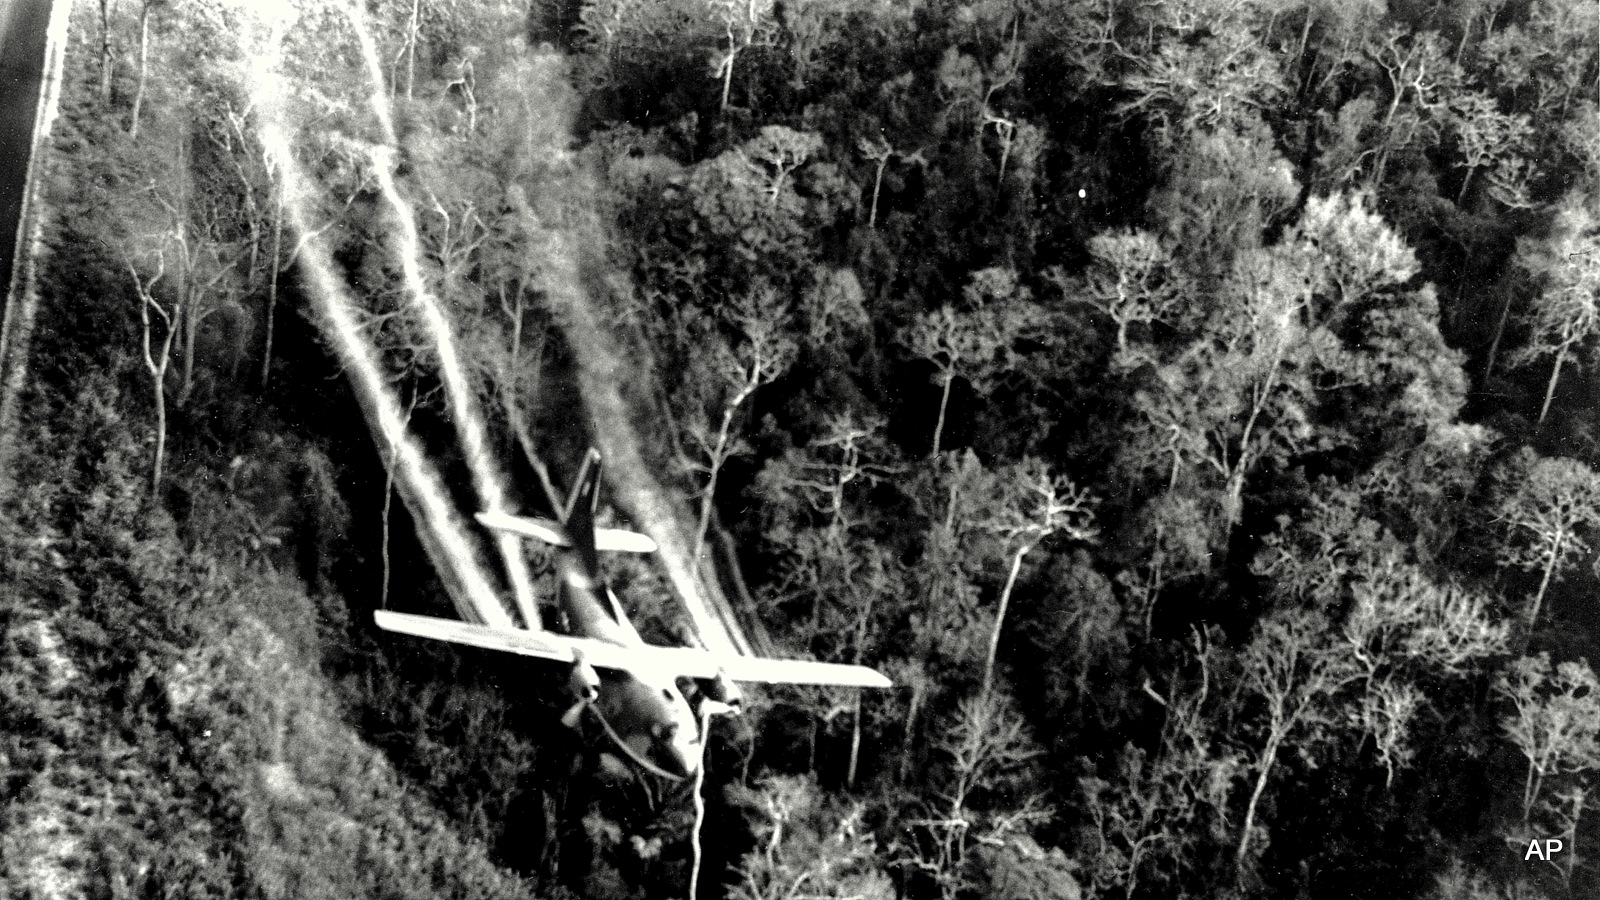 A U.S. Air Force C-123 flies low along a South Vietnamese highway spraying Agent Orange on dense jungle growth beside the road to eliminate ambush sites for the Viet Cong during the Vietnam War. During the Vietnam War, Air Force C-123 planes sprayed millions of gallons of herbicides over the jungles of Southeast Asia to destroy enemy crops and tree cover.